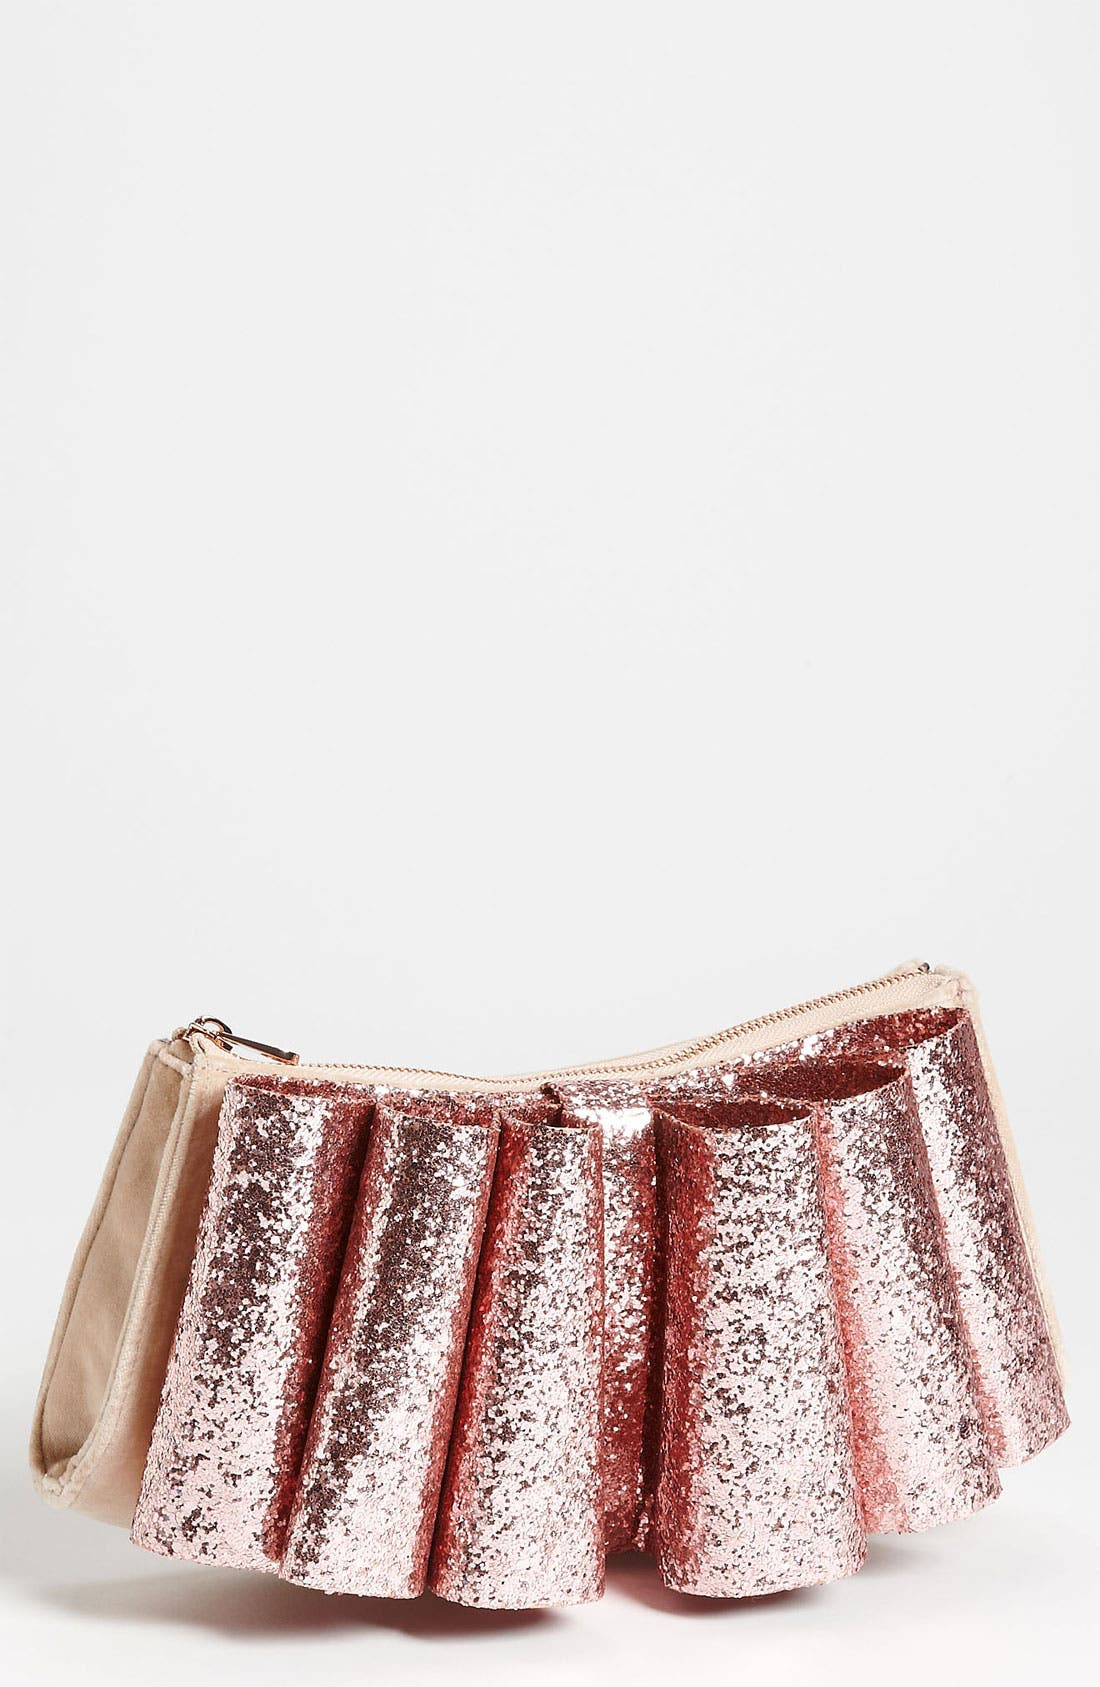 Main Image - Ted Baker London 'Langley Glitter Bow' Clutch